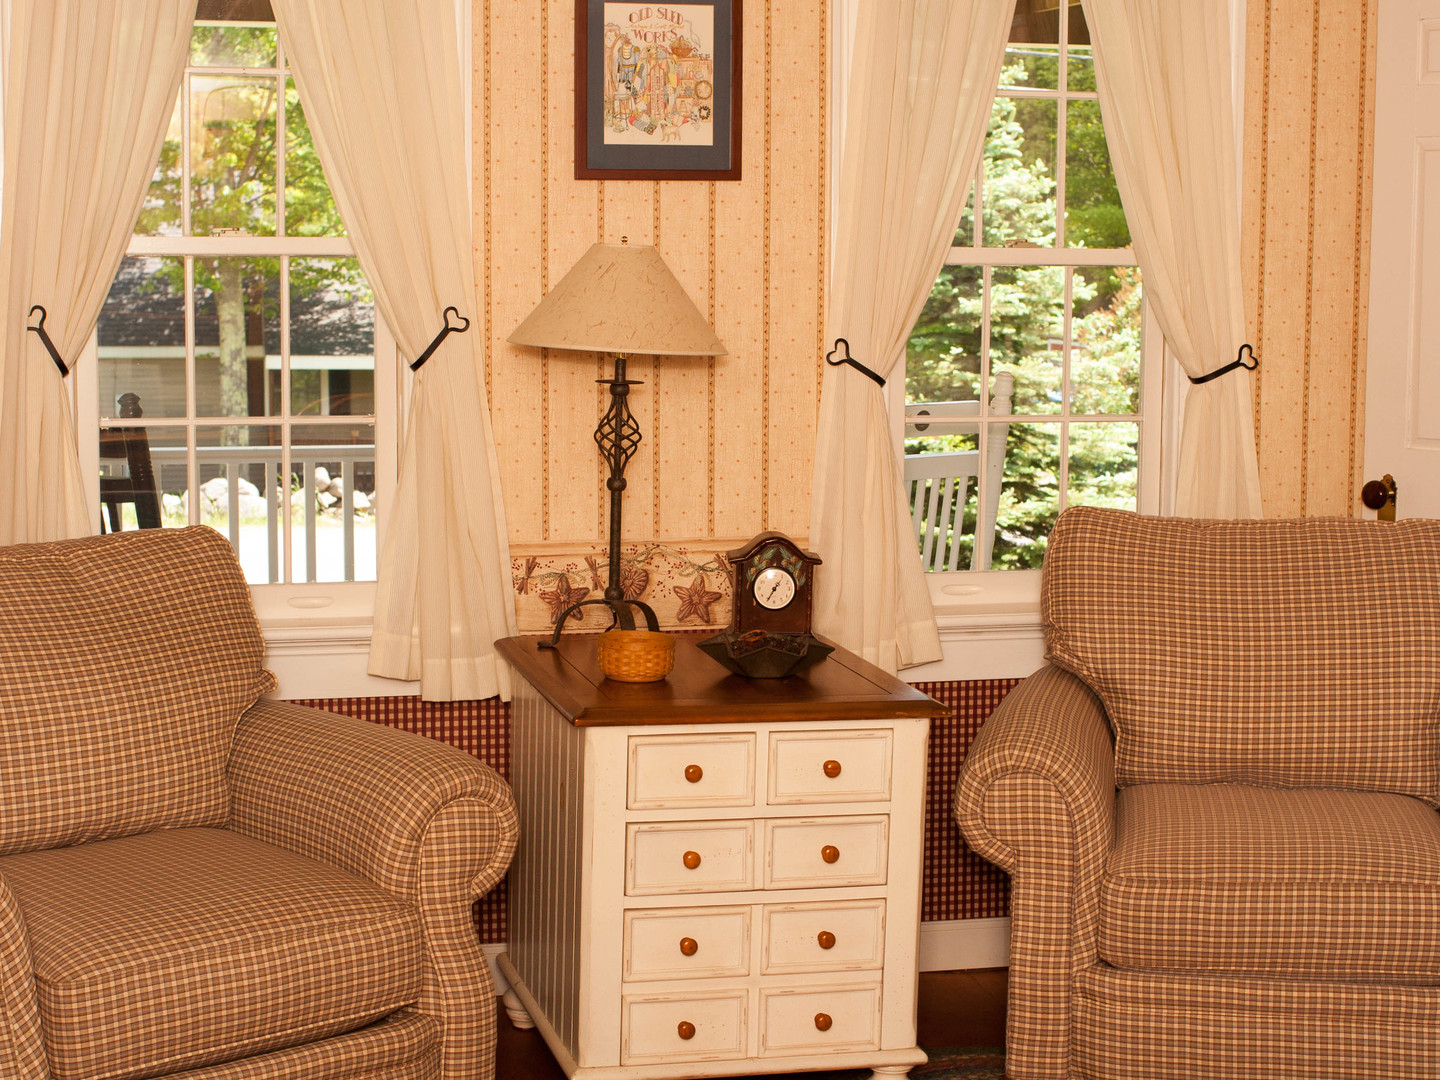 A living room filled with furniture and a window at Pleasant View Bed & Breakfast.